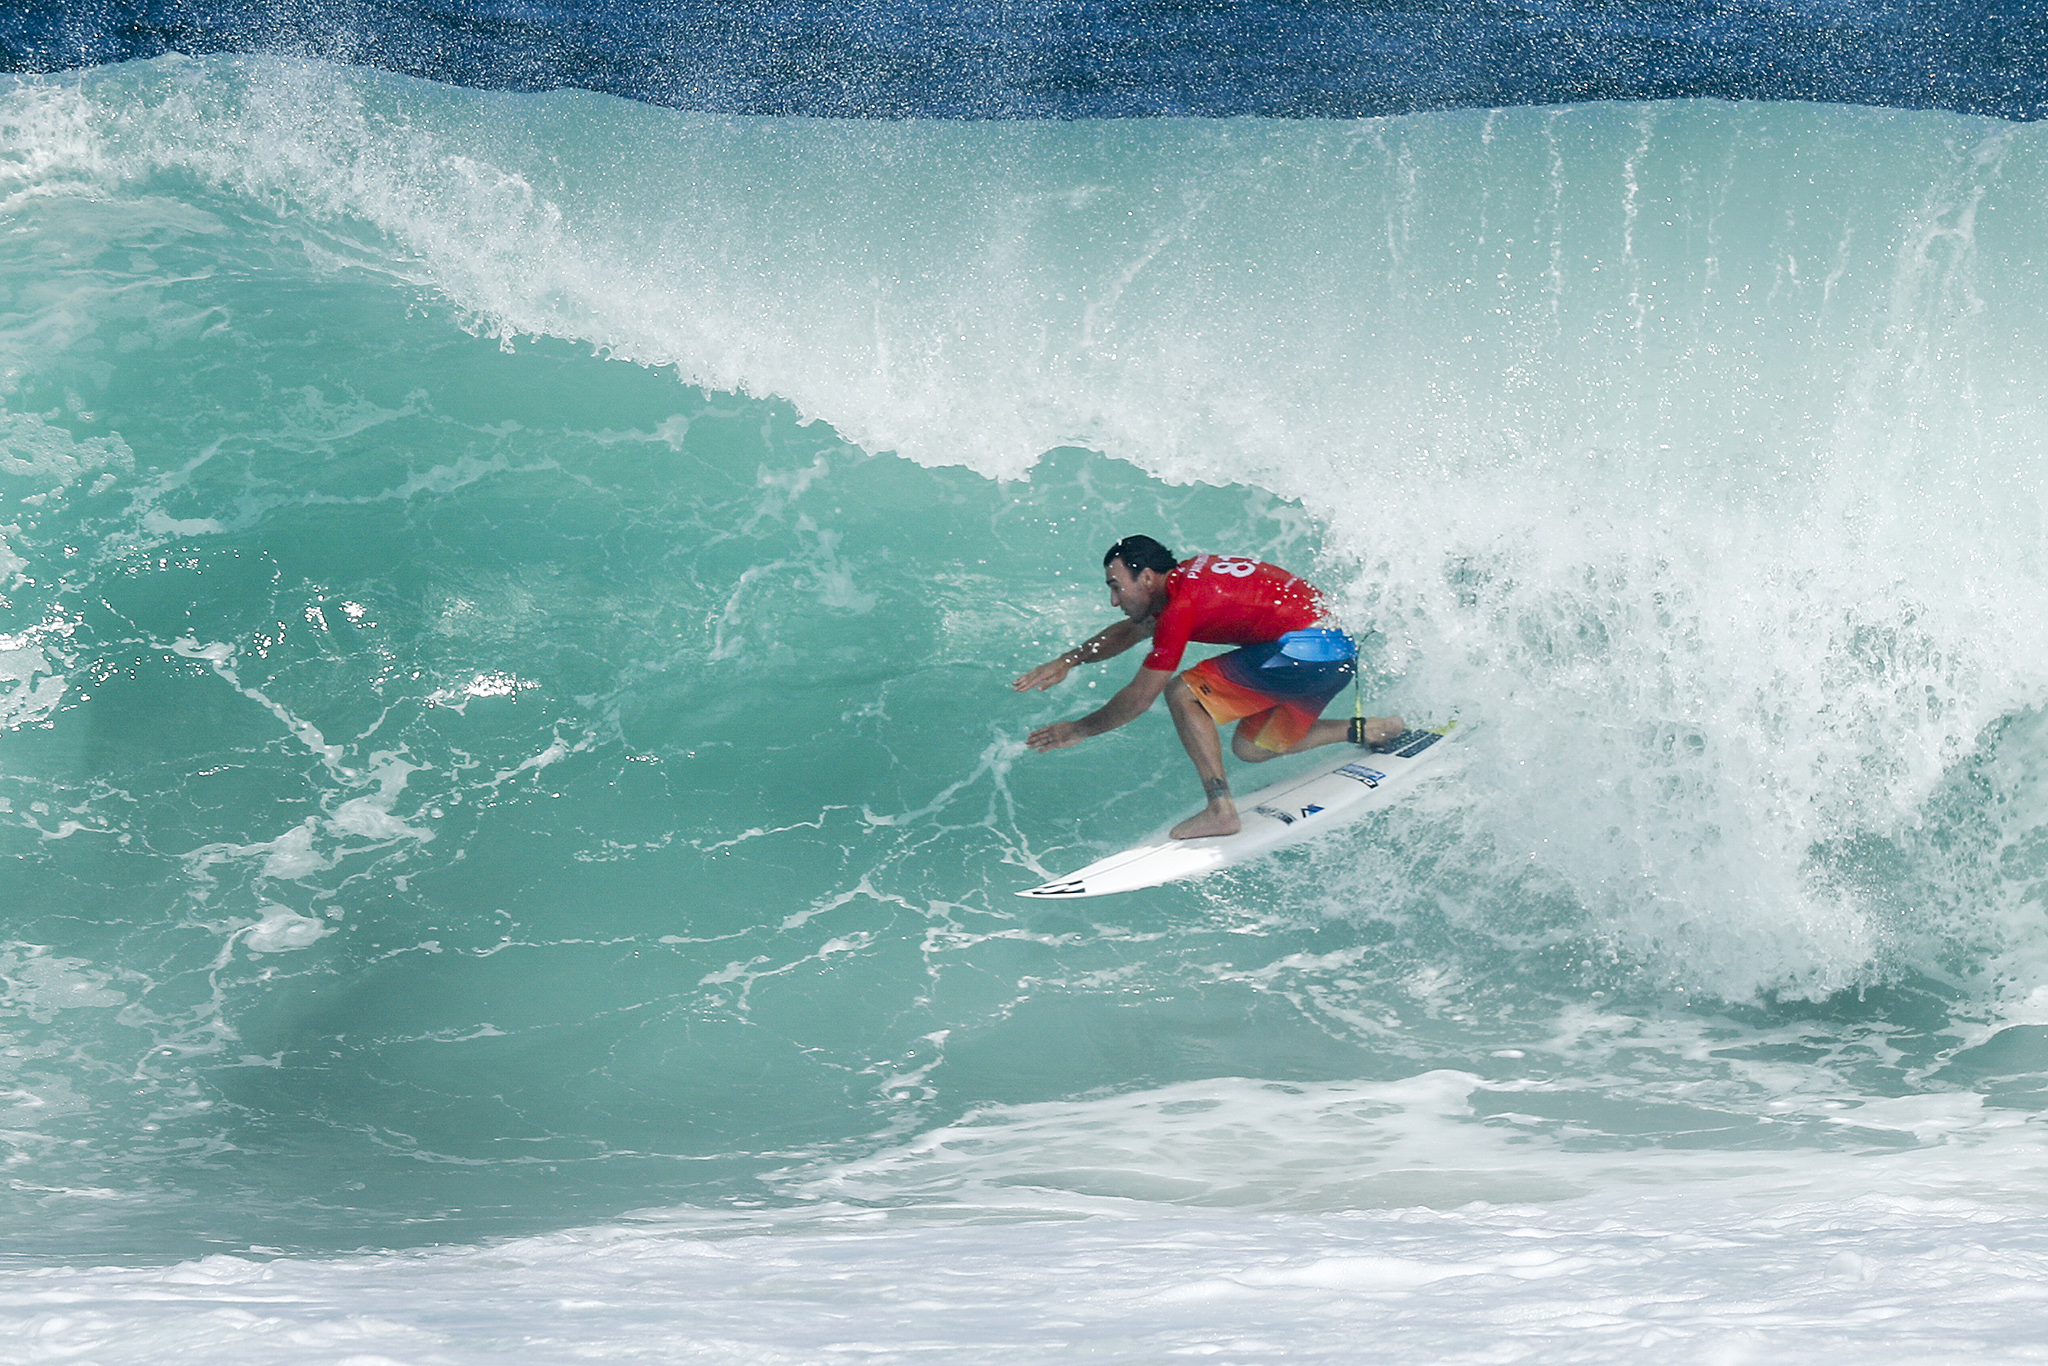 Joel Parkinson of Australia advances directly to Round Three after winning Heat 9 of Round One at the Oi Rio Pro at Saquarema, Rio de Janeiro, Brazil.